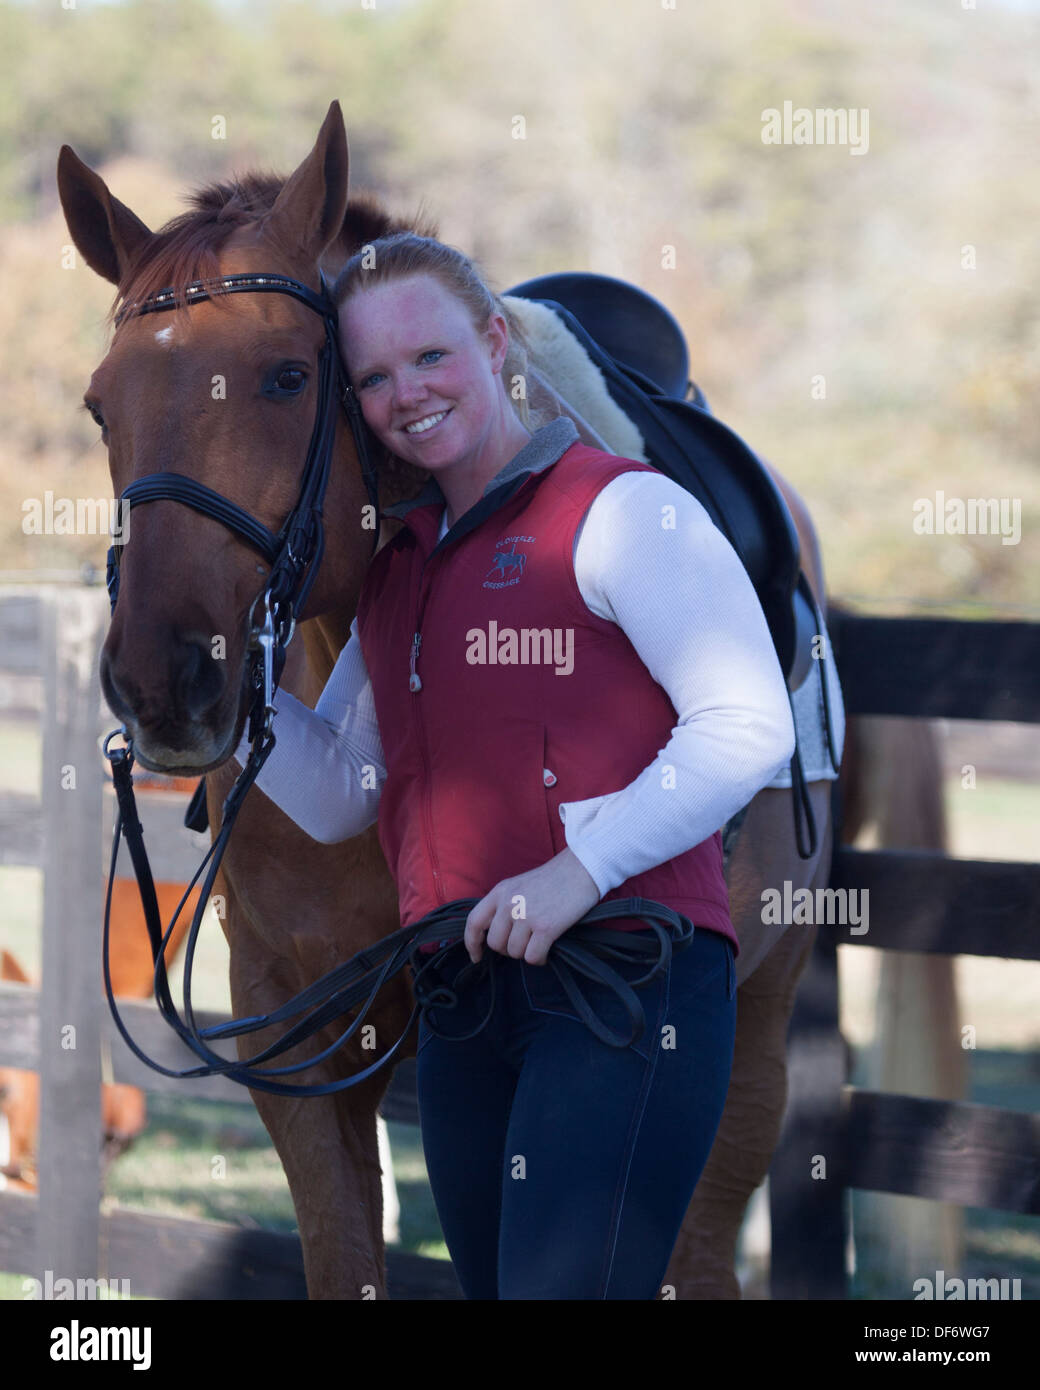 Woman with dressage horse - Stock Image